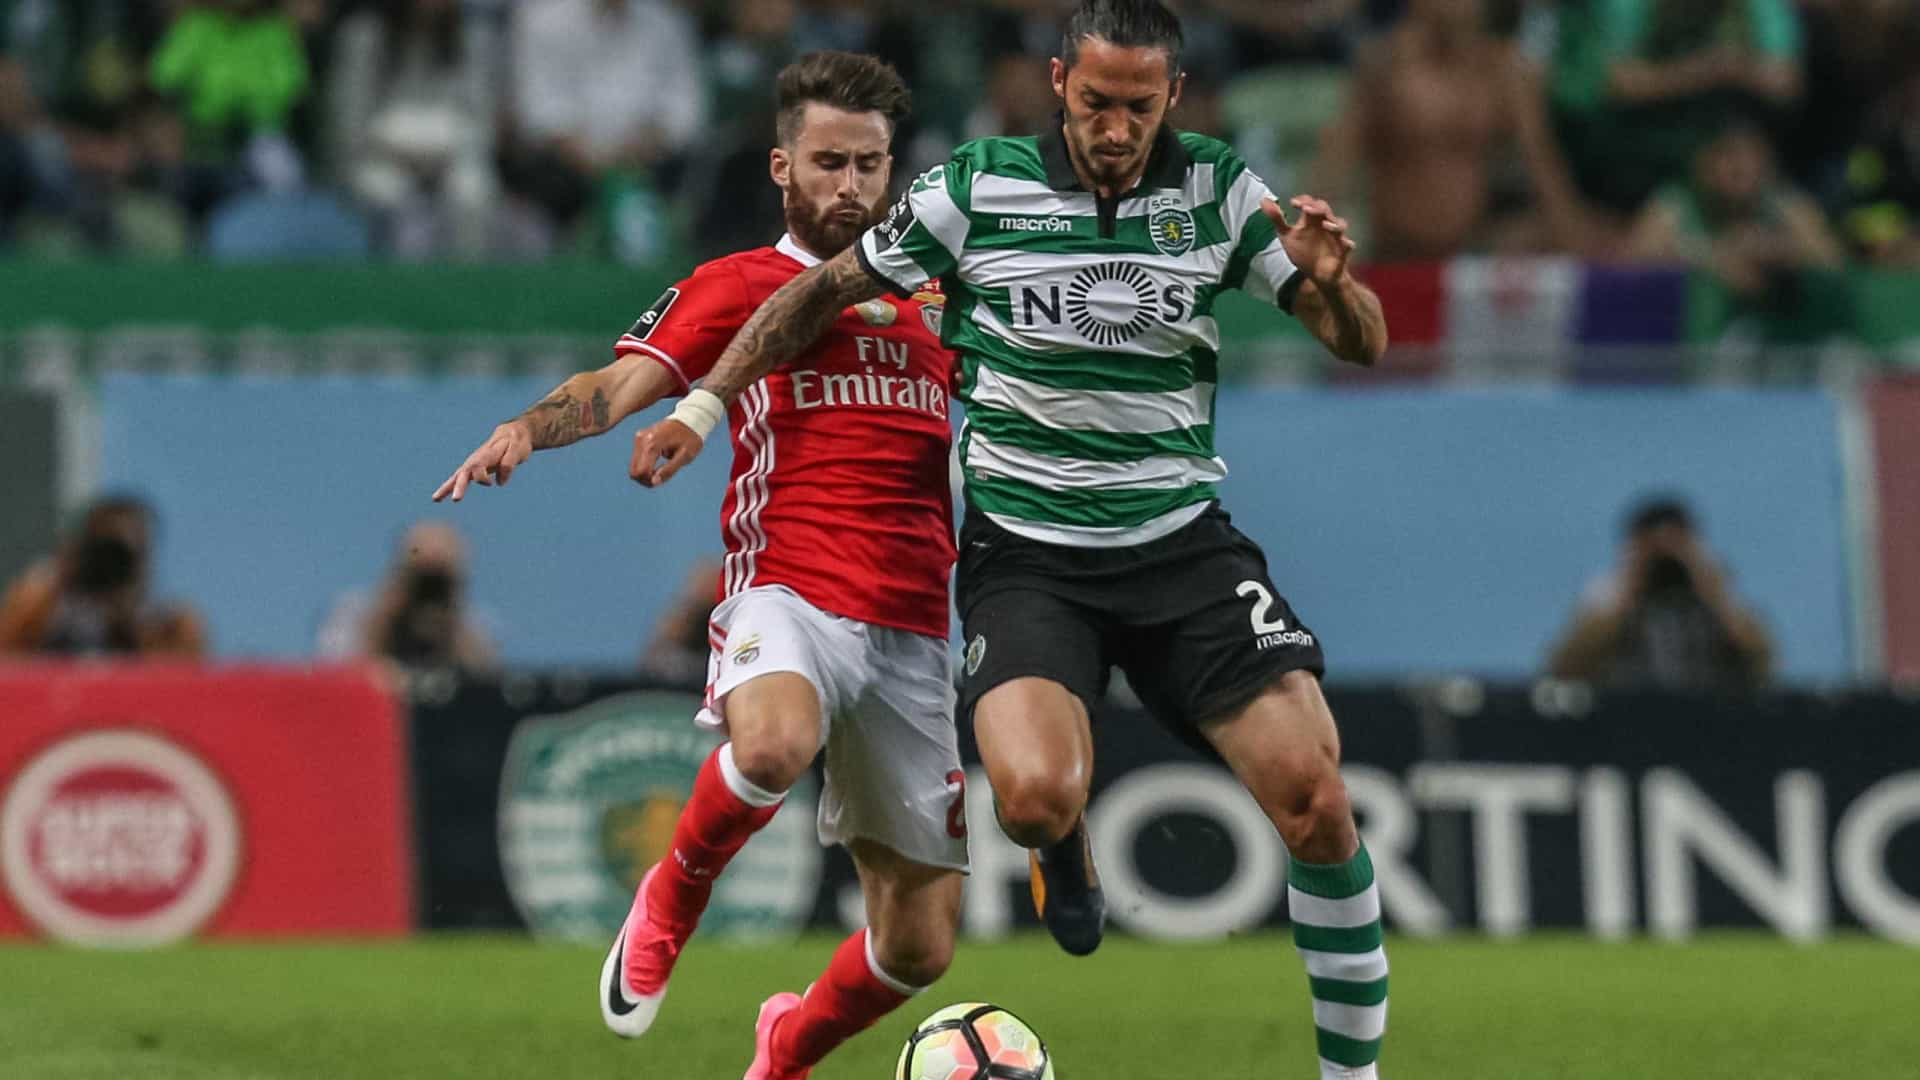 Schelotto despede-se do Sporting com carta emocionada